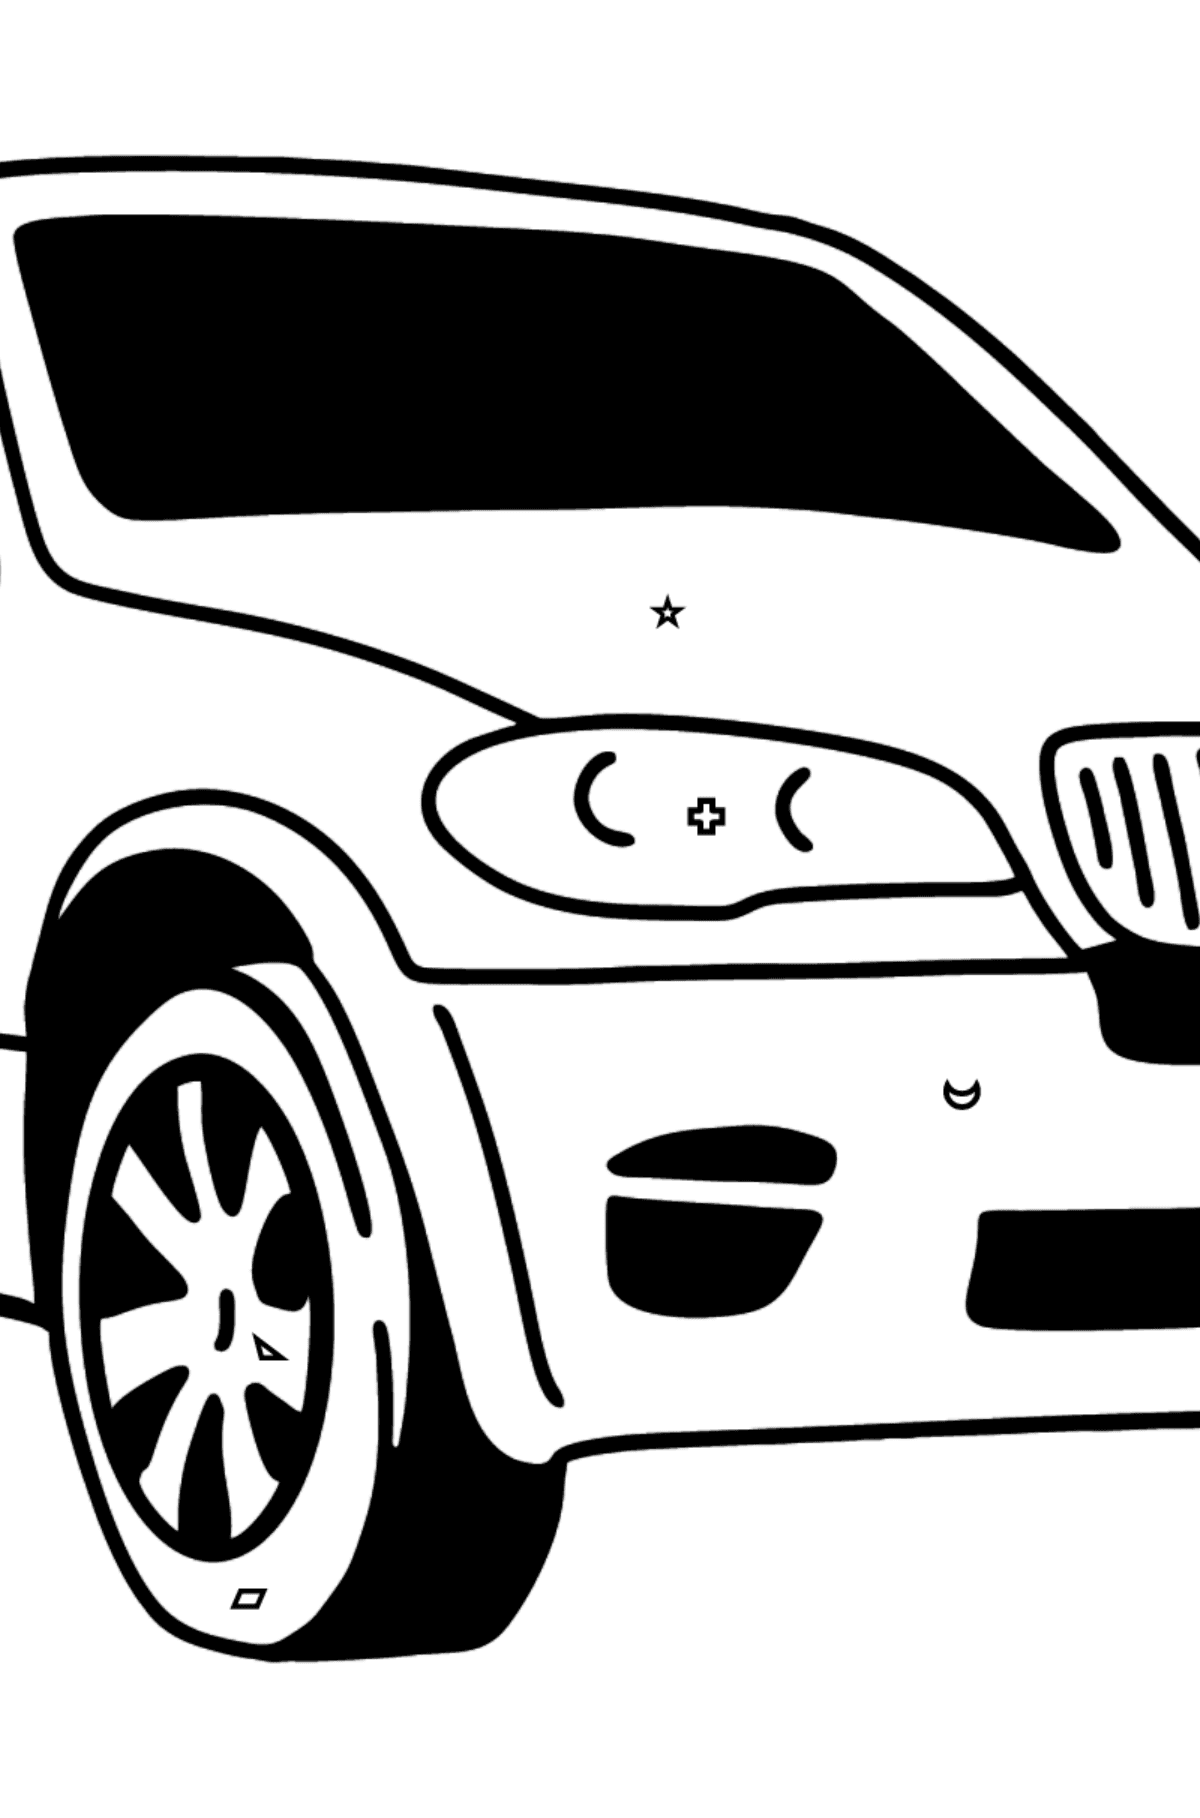 BMW X6 Crossover coloring page - Coloring by Geometric Shapes for Kids